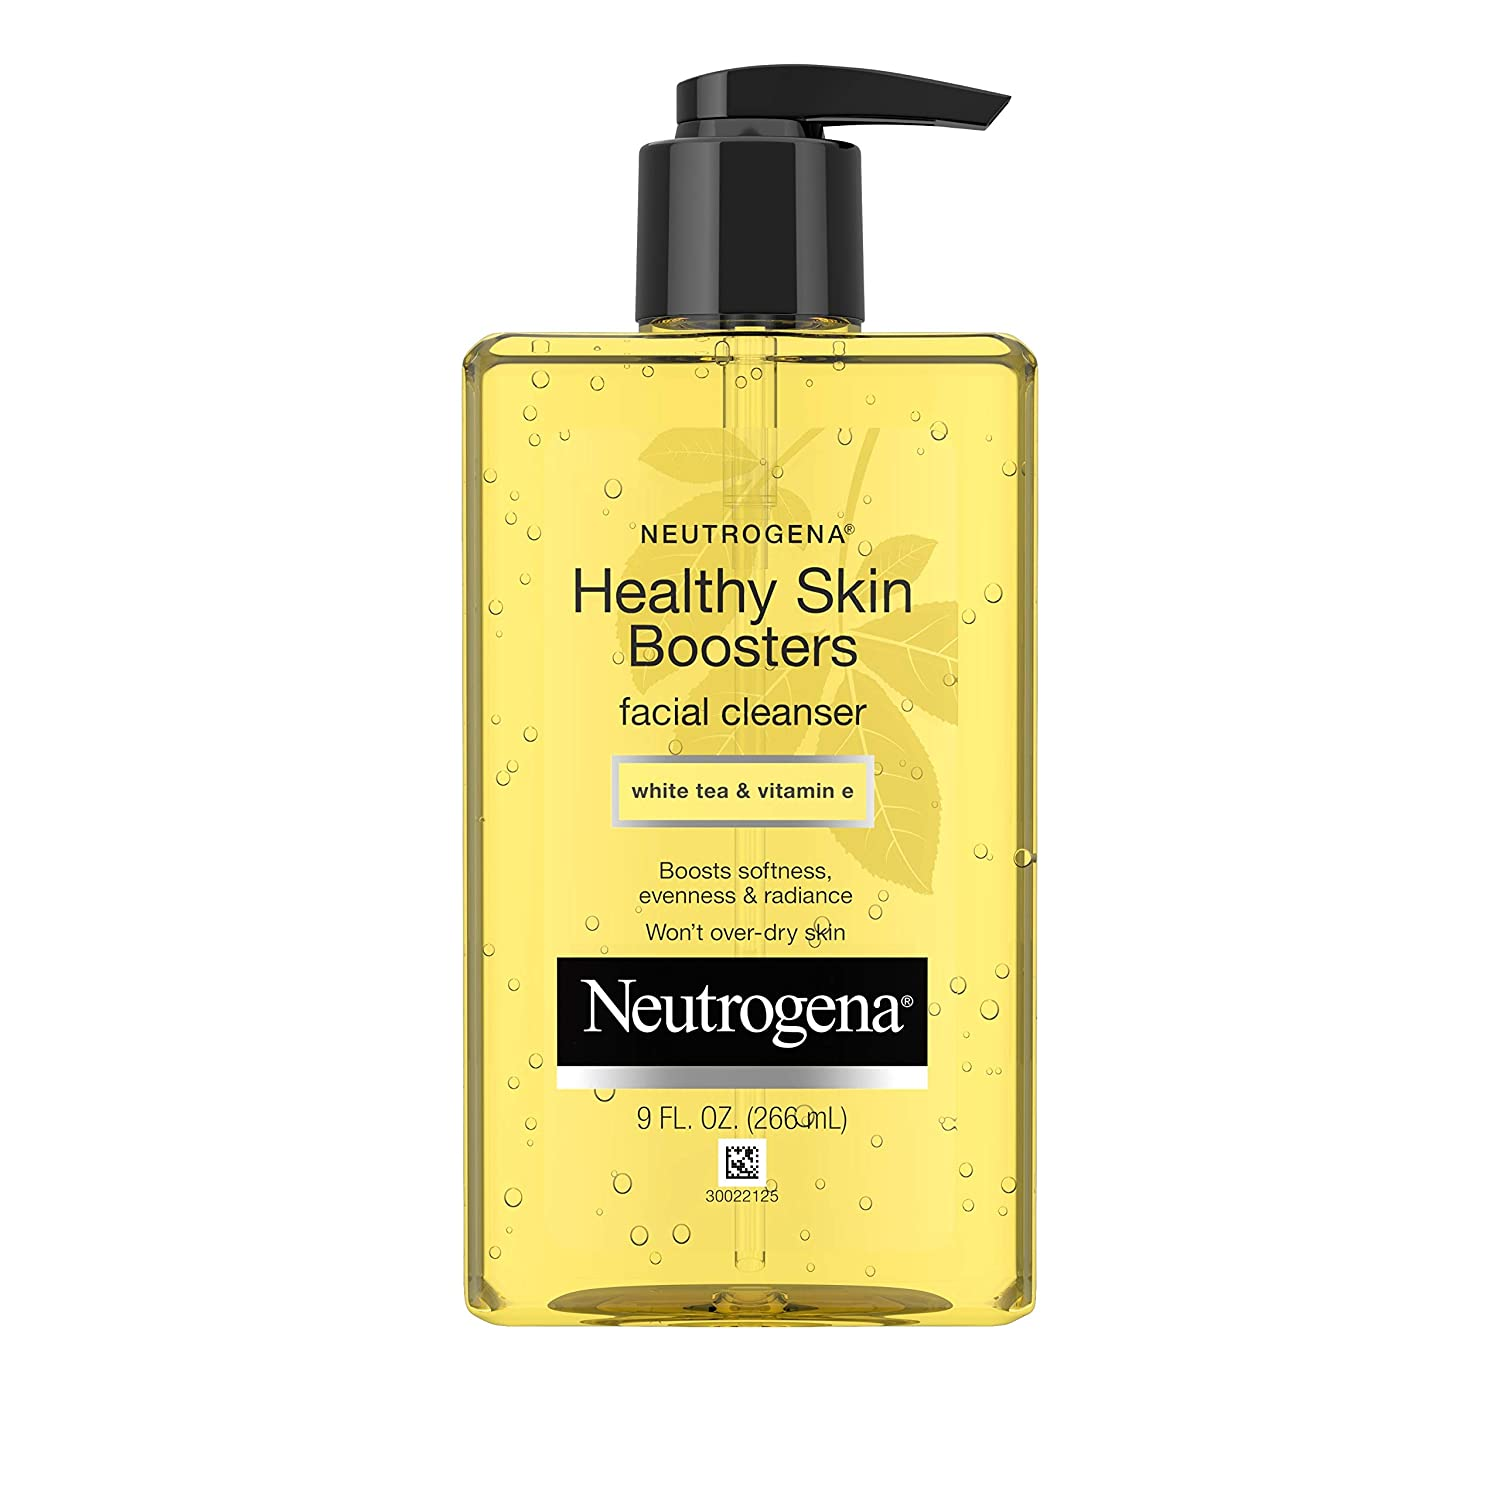 Neutrogena Healthy Skin Boosters with Cleanser Limited time cheap Reservation sale Moisturizi Facial